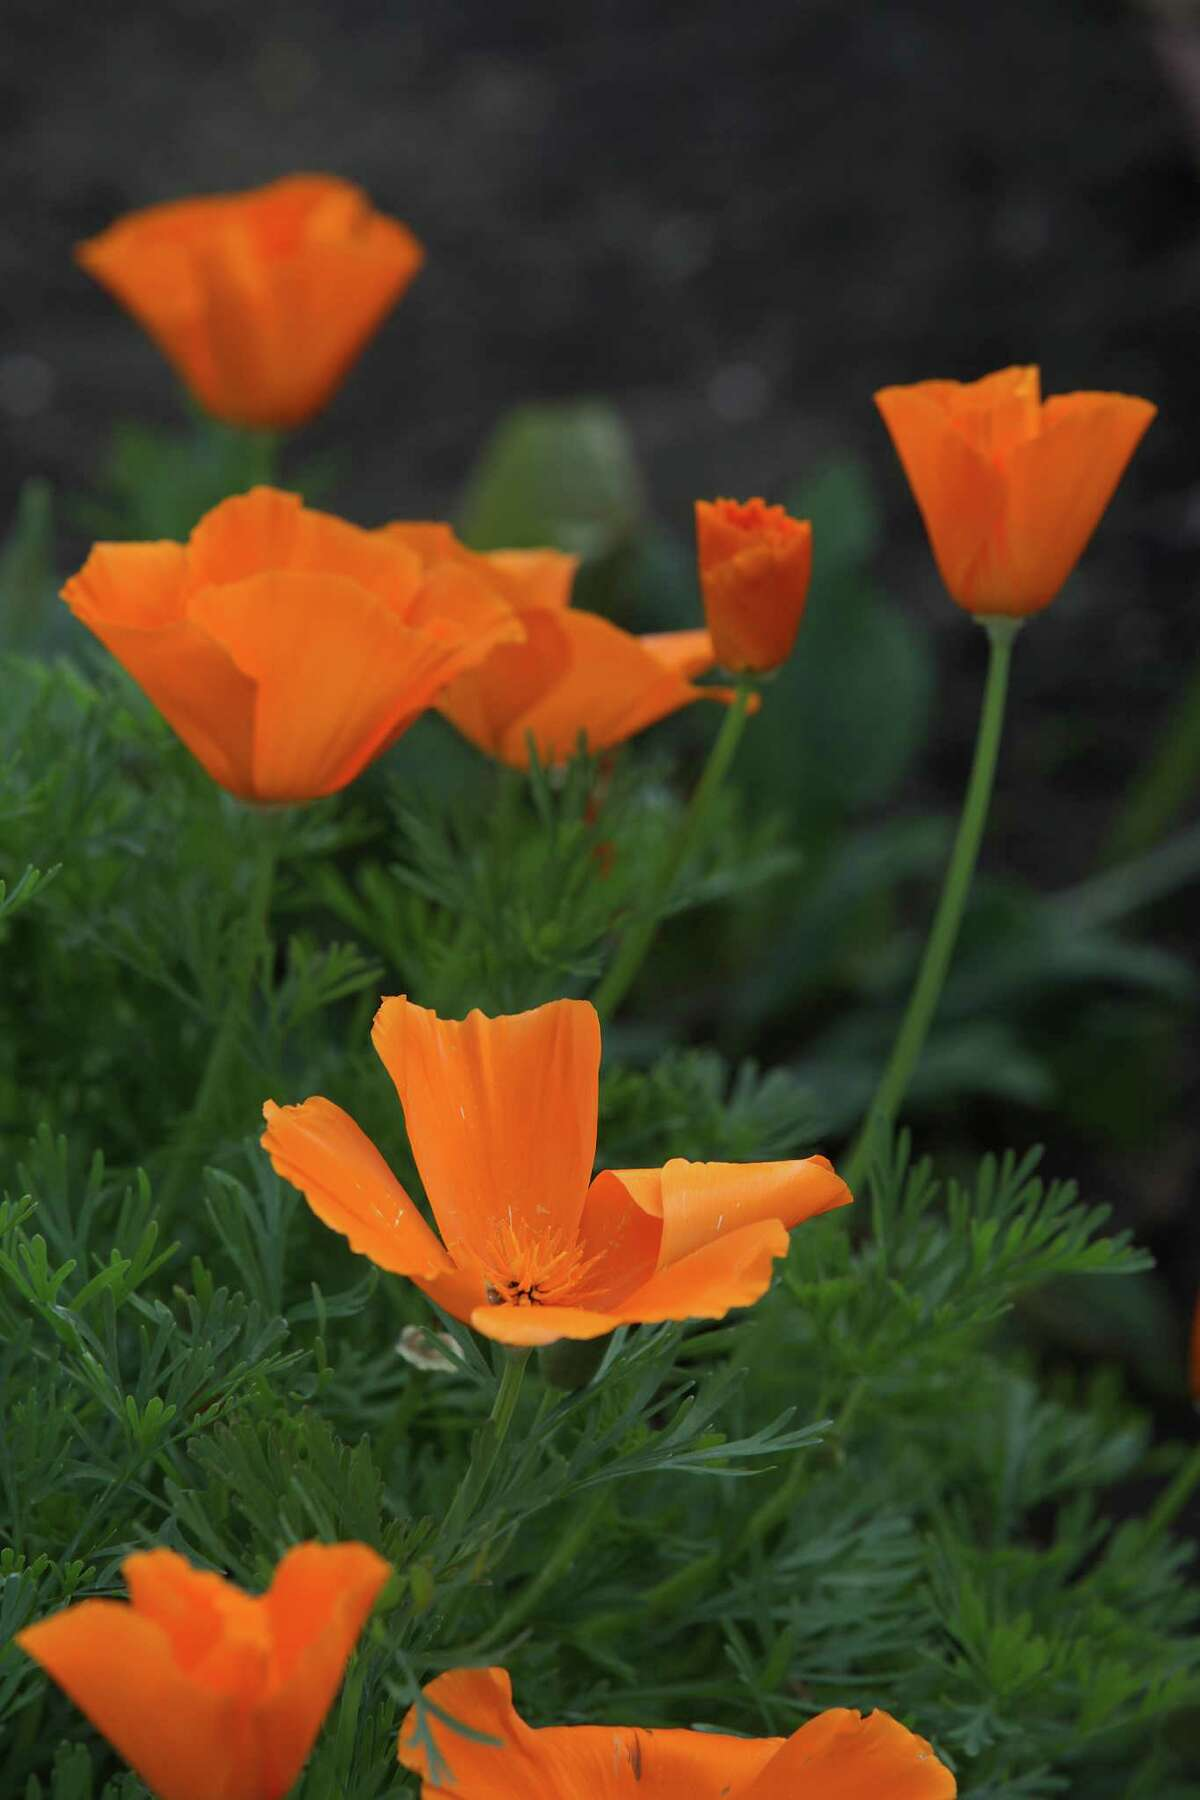 How poppies can look without an EnChroma color blindness-correcting lens. The next slide shows how poppies look with the lens.